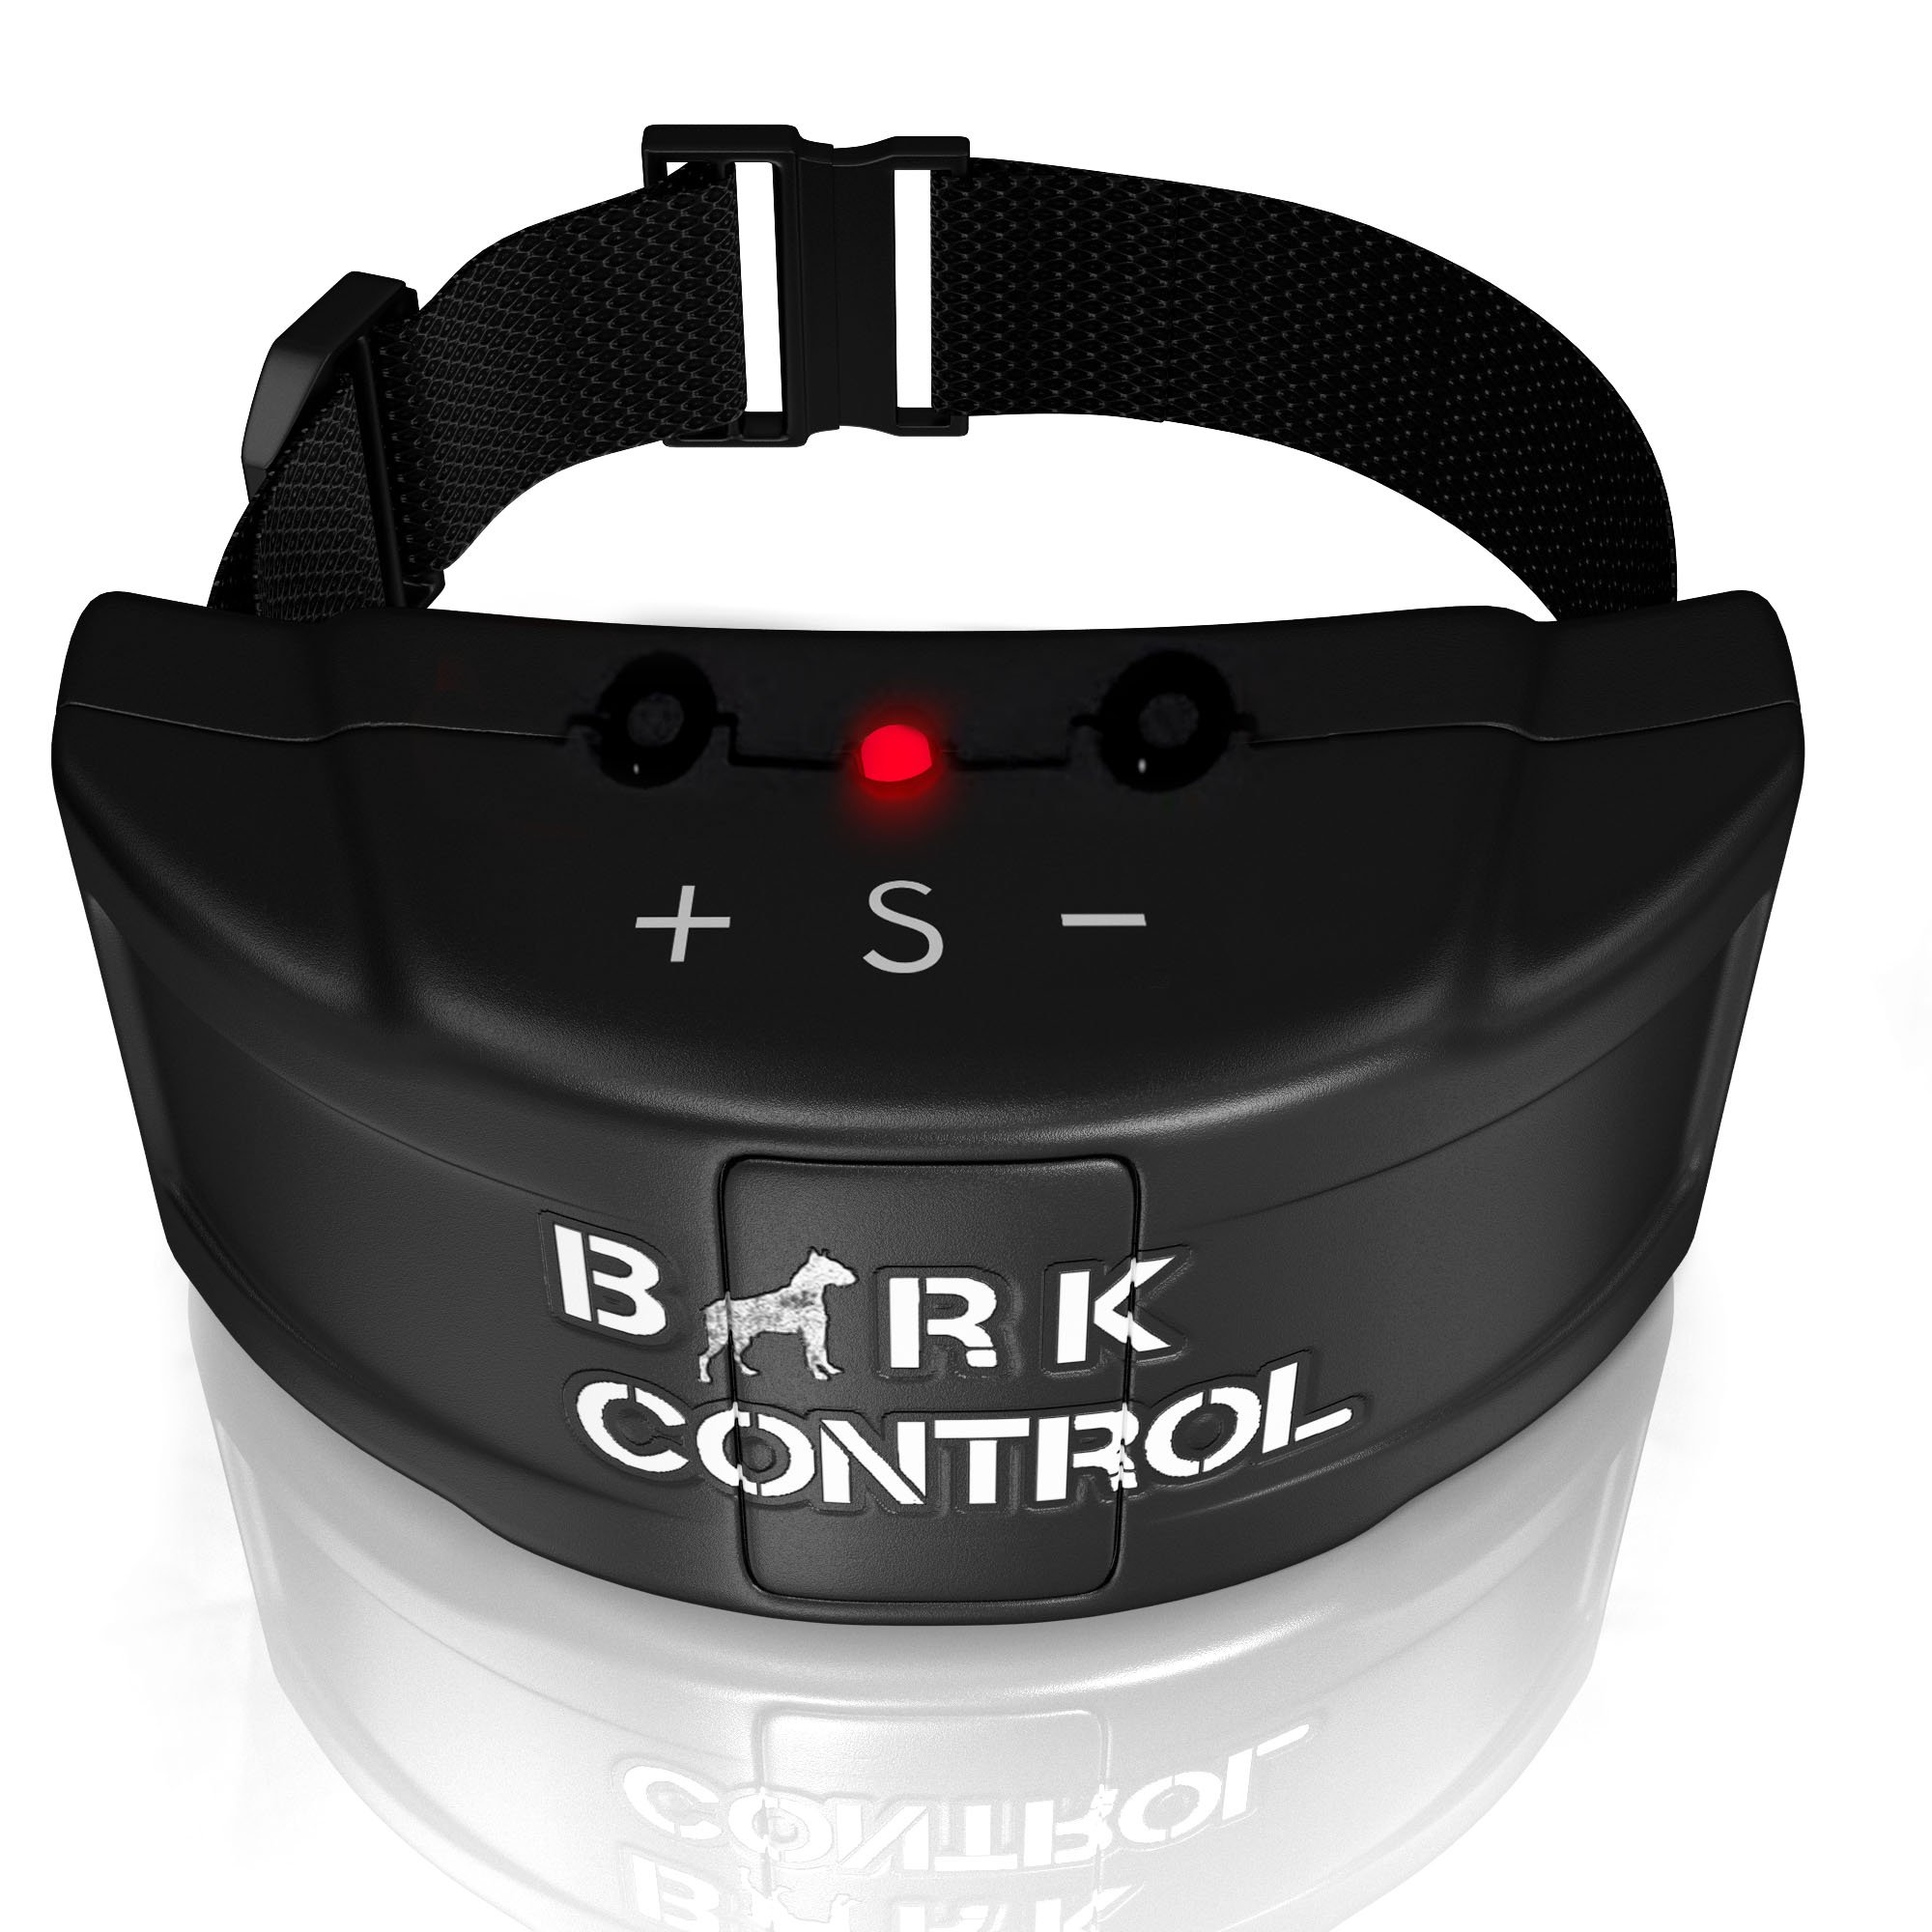 OOS Bark Control Pro - Dog Bark Collar - The Quick and Effective Small and Large